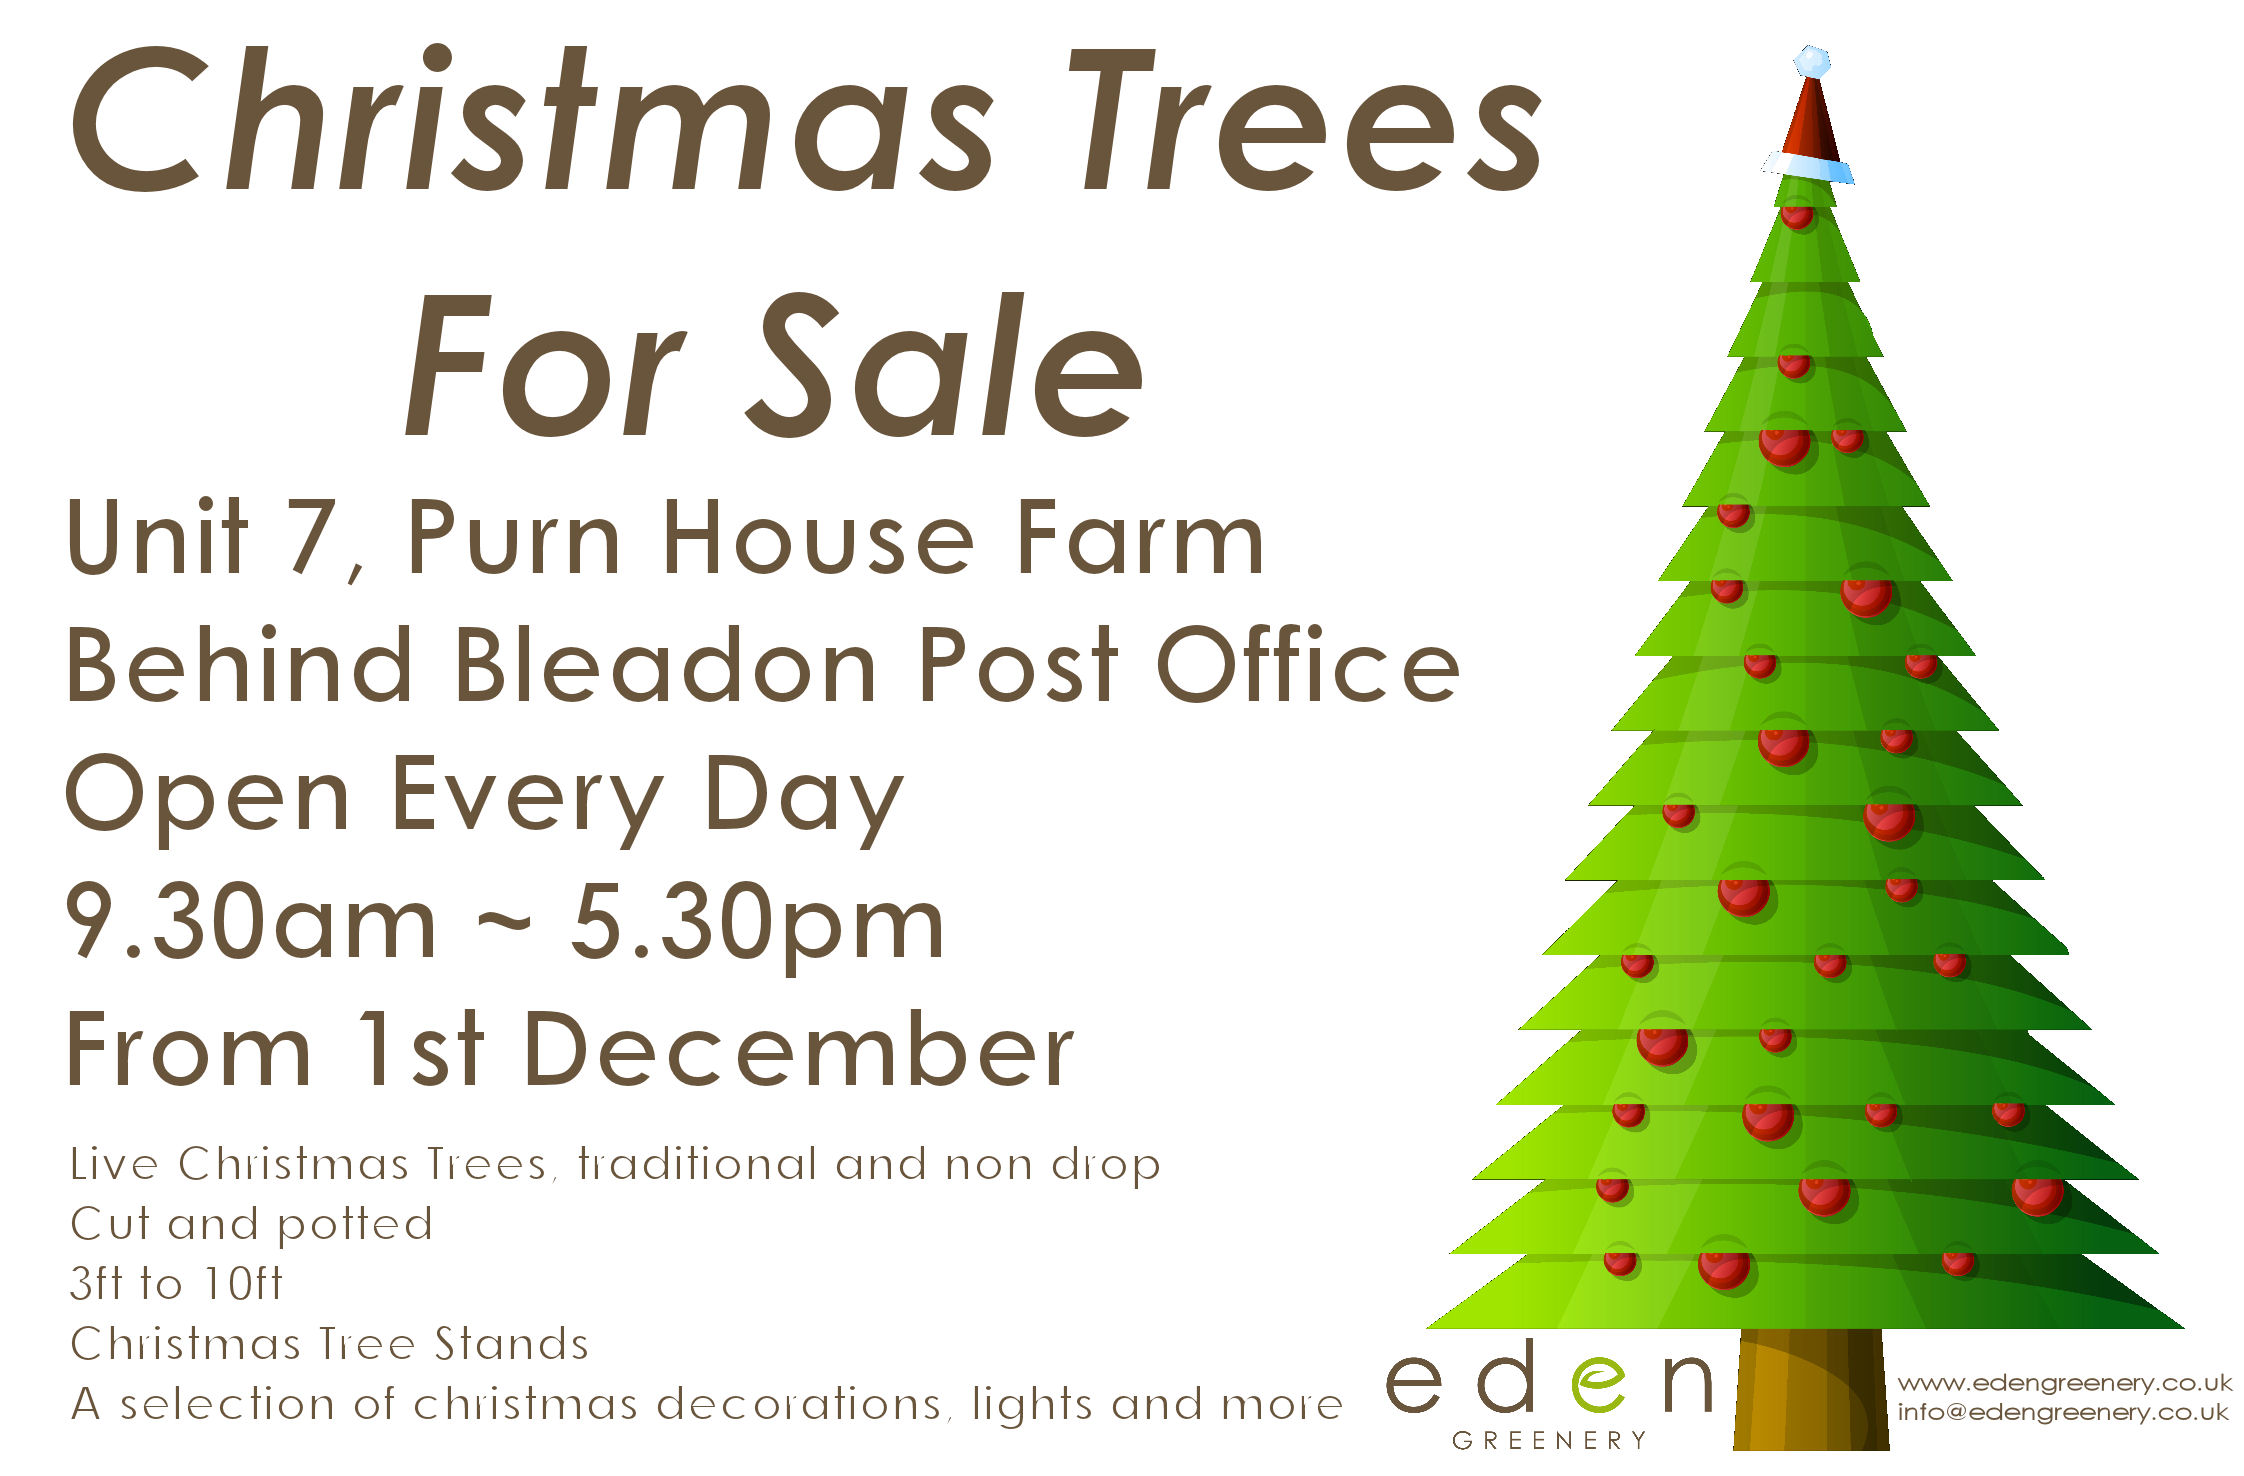 Christmas Trees from 1st December by Eden Greenery